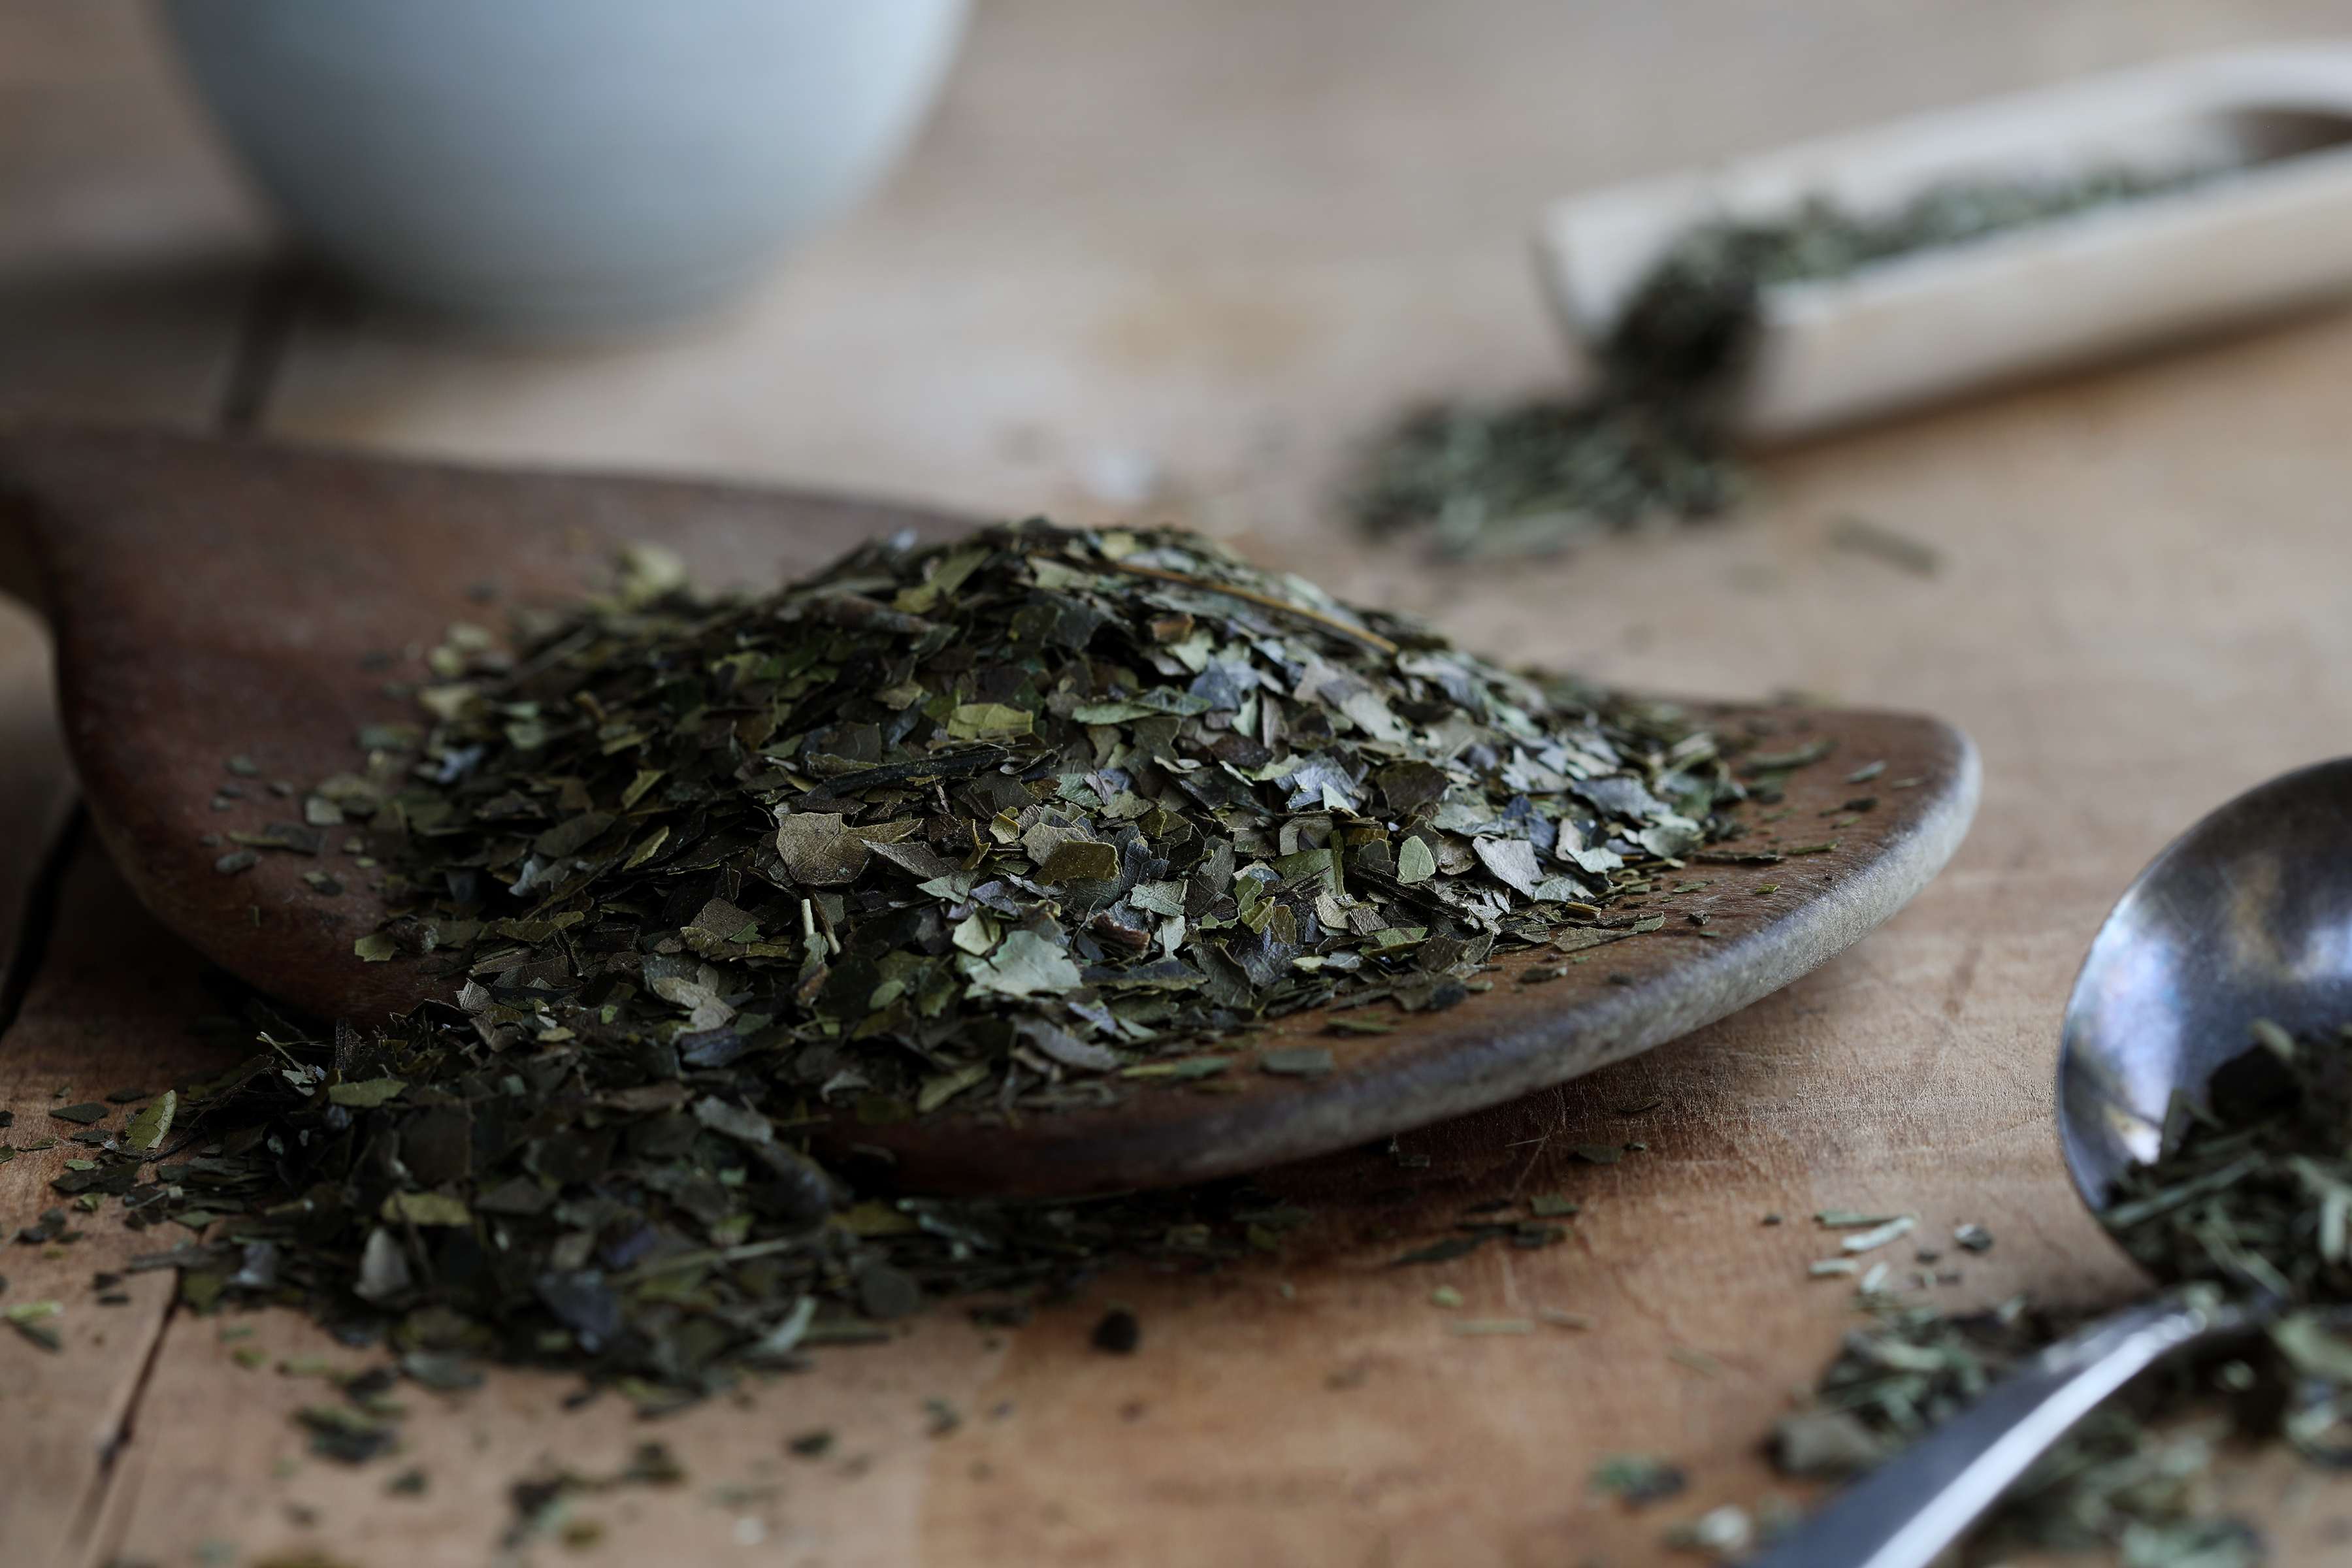 Spoon of green botanicals spilling onto rustic wooden table.